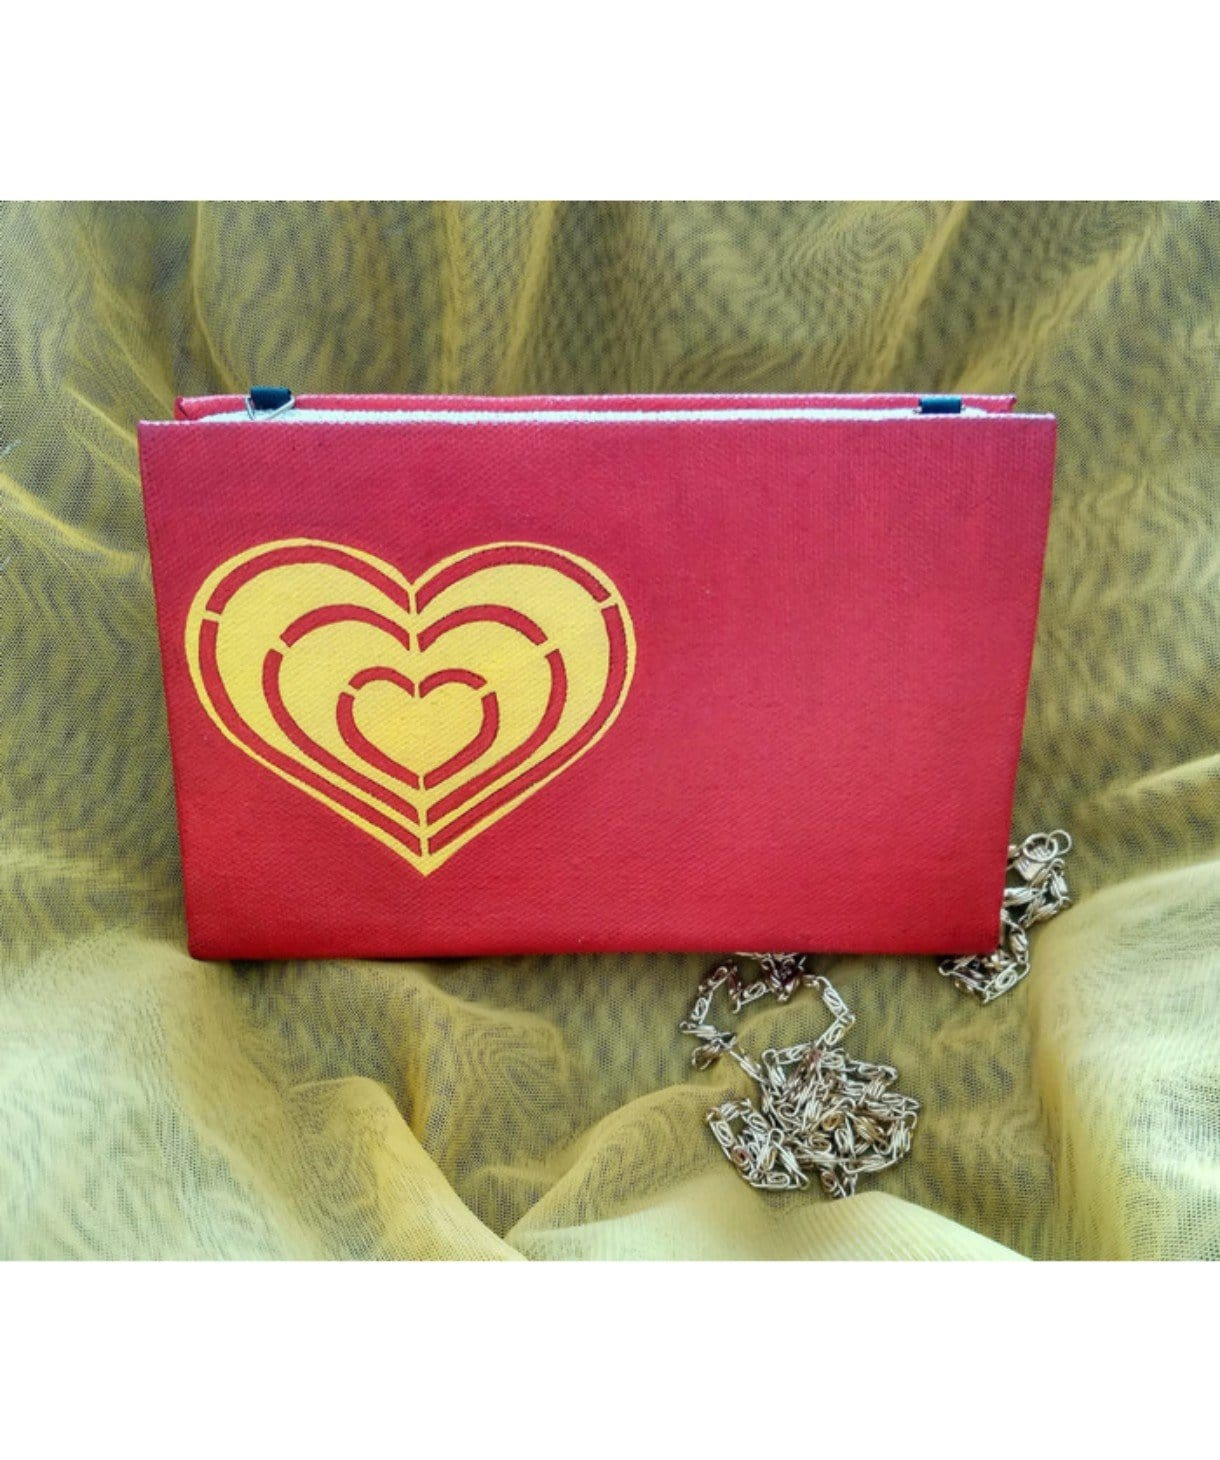 Heart Of Gold Box Clutch - Uptownie